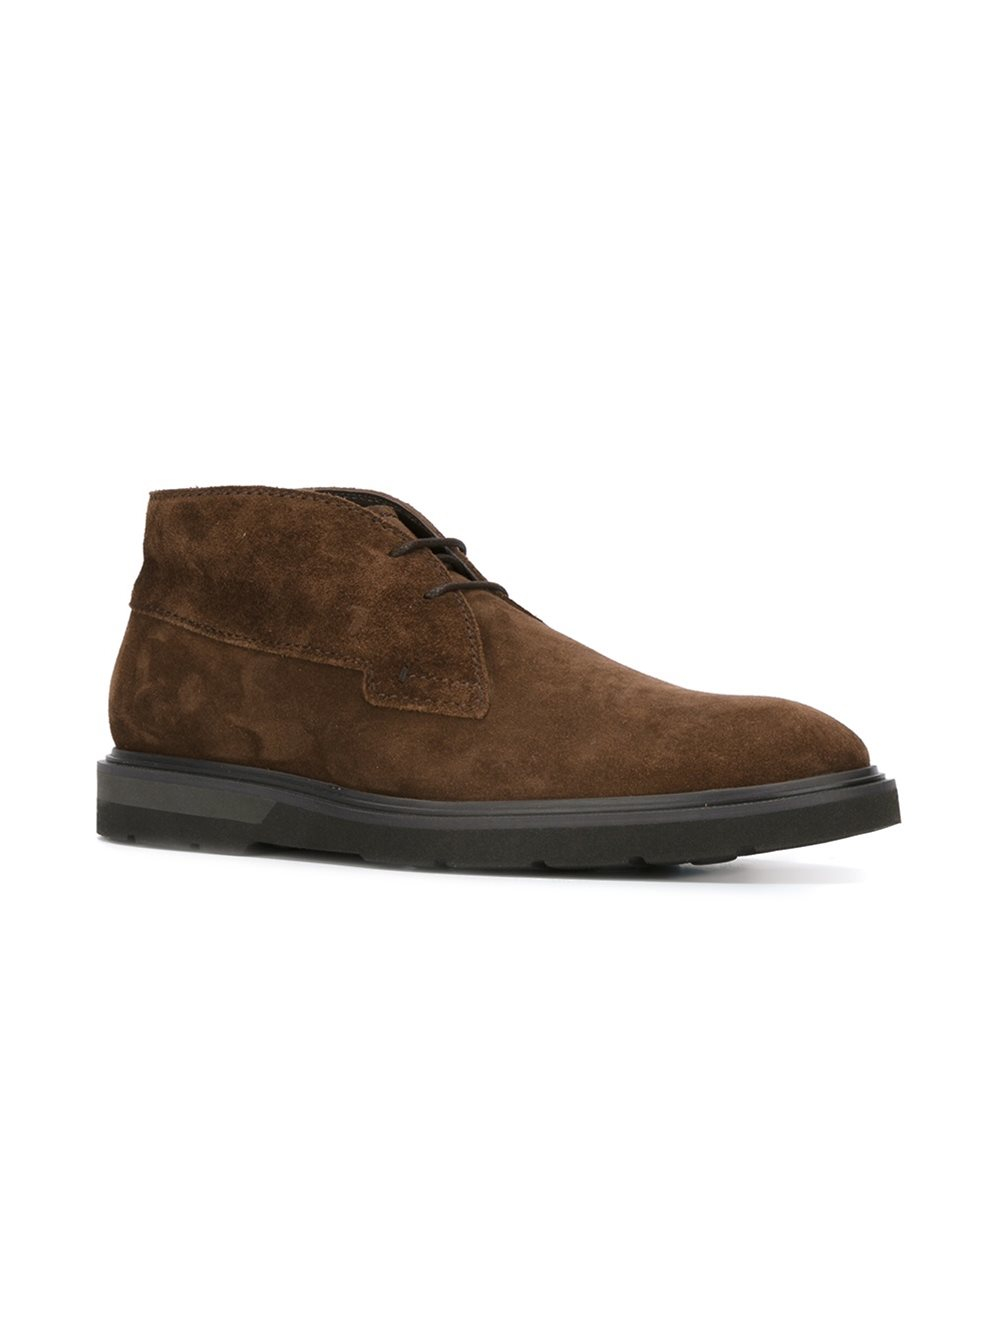 Hogan Shoes Sale Tod's Suede Desert Boots In Brown For Men - Lyst